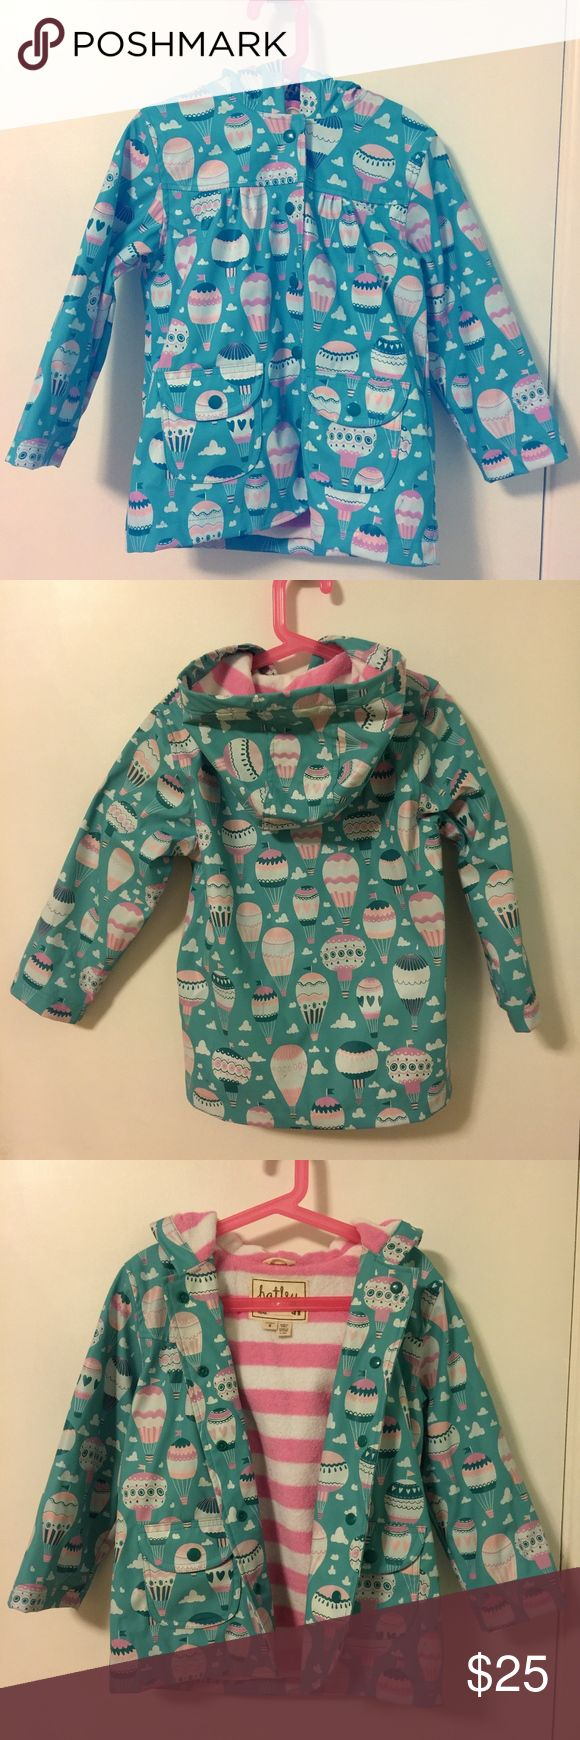 Hatley girls raincoat Cute rain jacket featuring hot air balloons was originally purchased at Bloomingdales. Excellent used condition, beautiful color and pattern. Warm fuzzy lining is perfect for fall. Hatley Jackets & Coats Raincoats